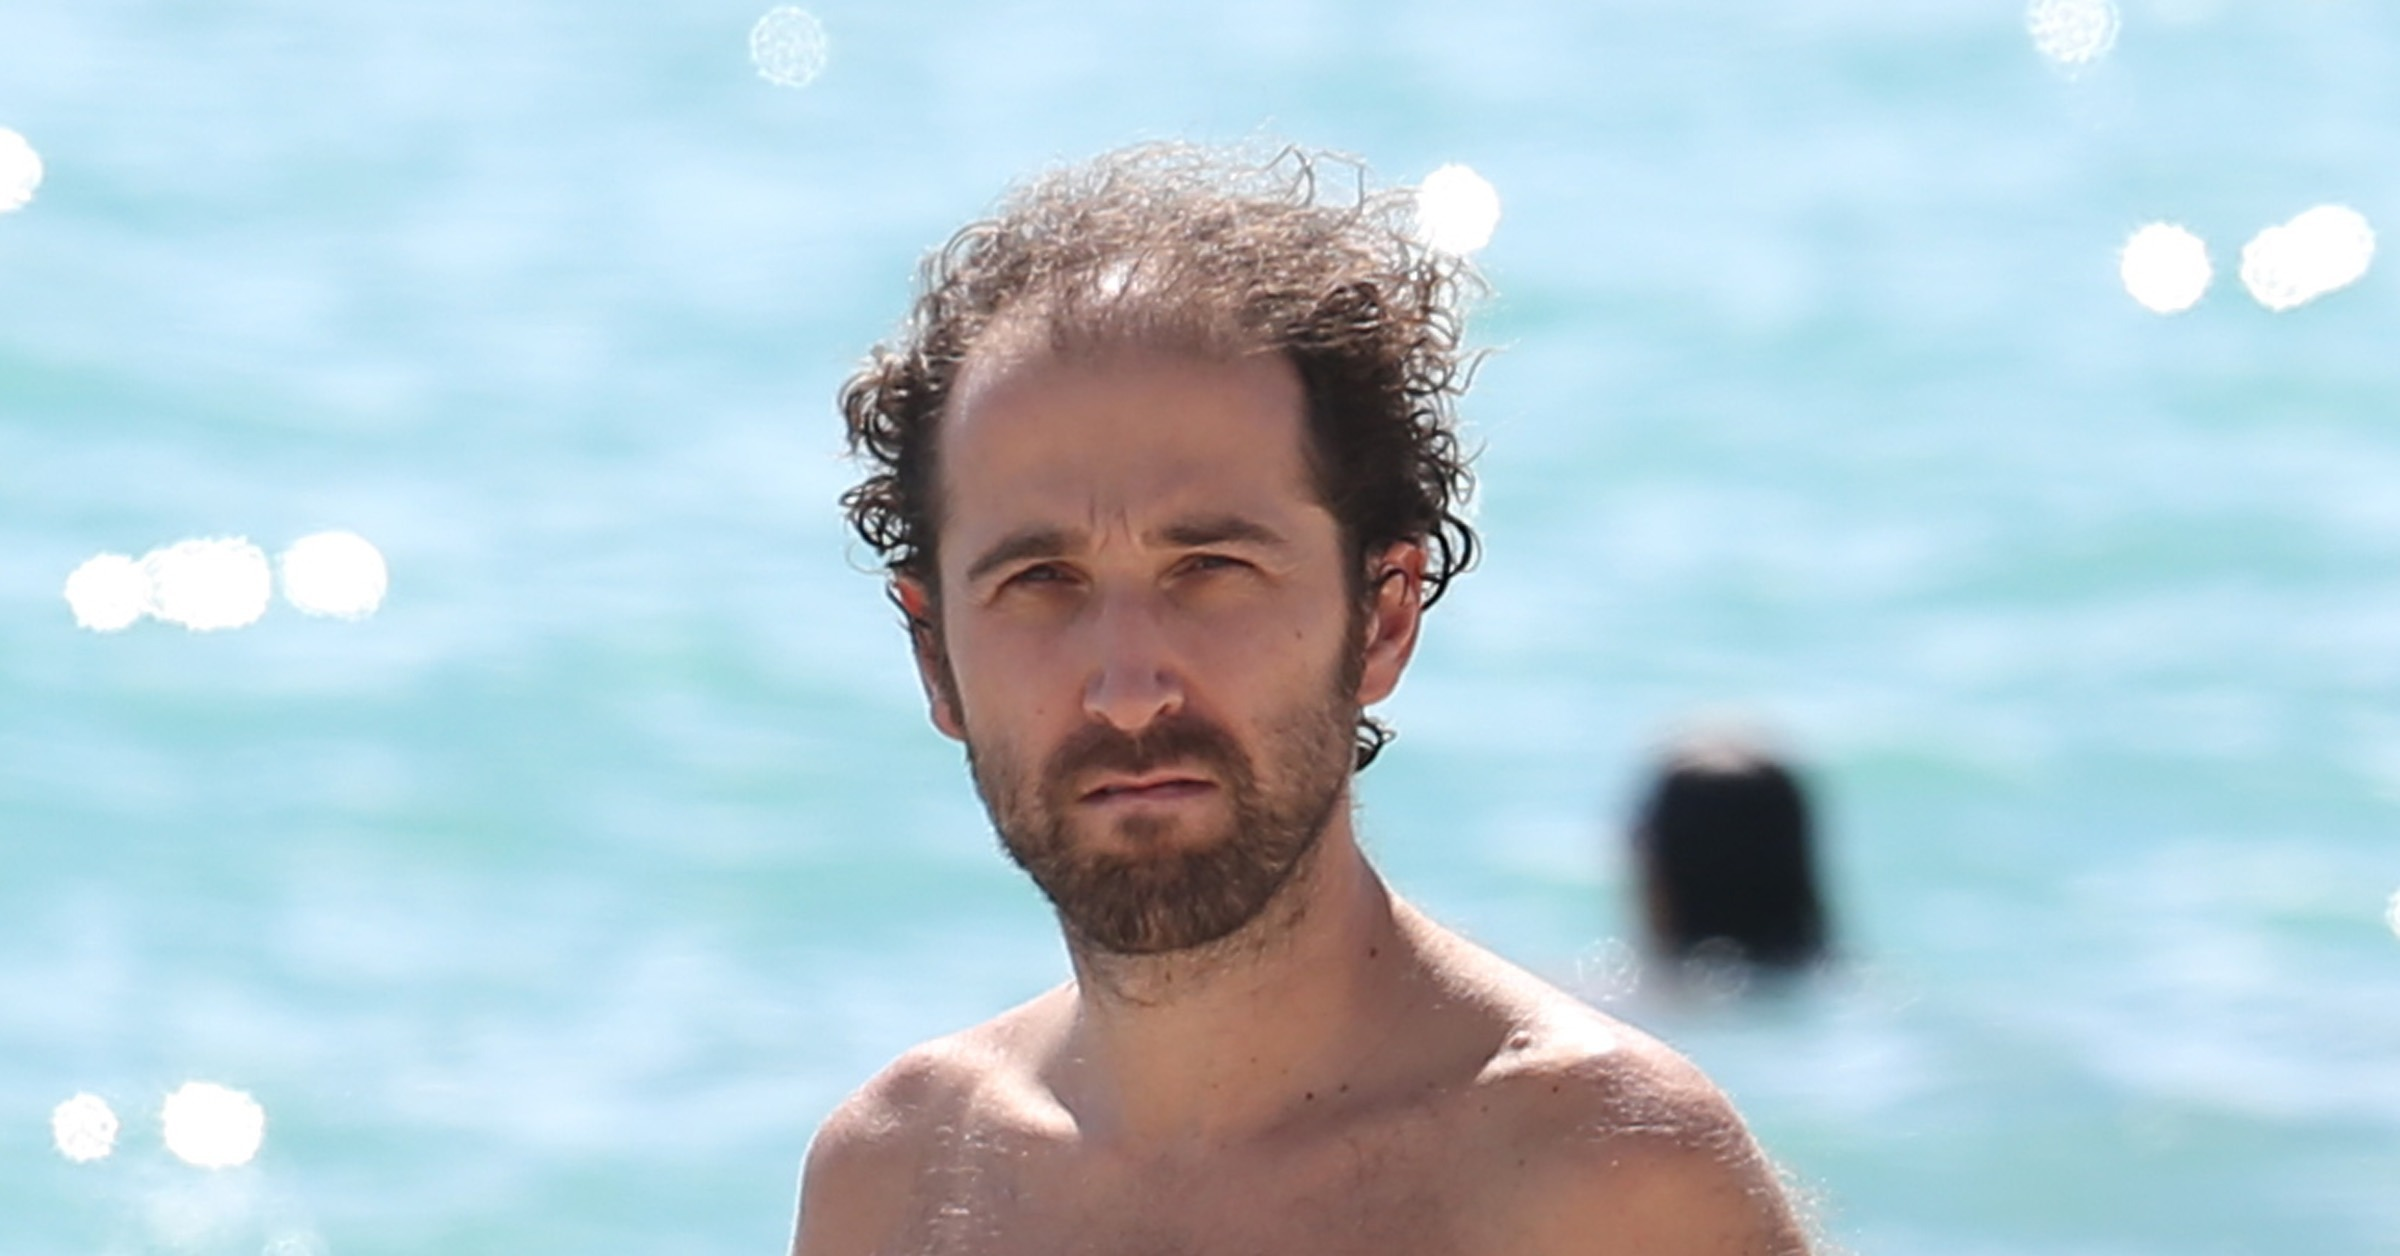 thomas bangalter spent time on a miami beach in october